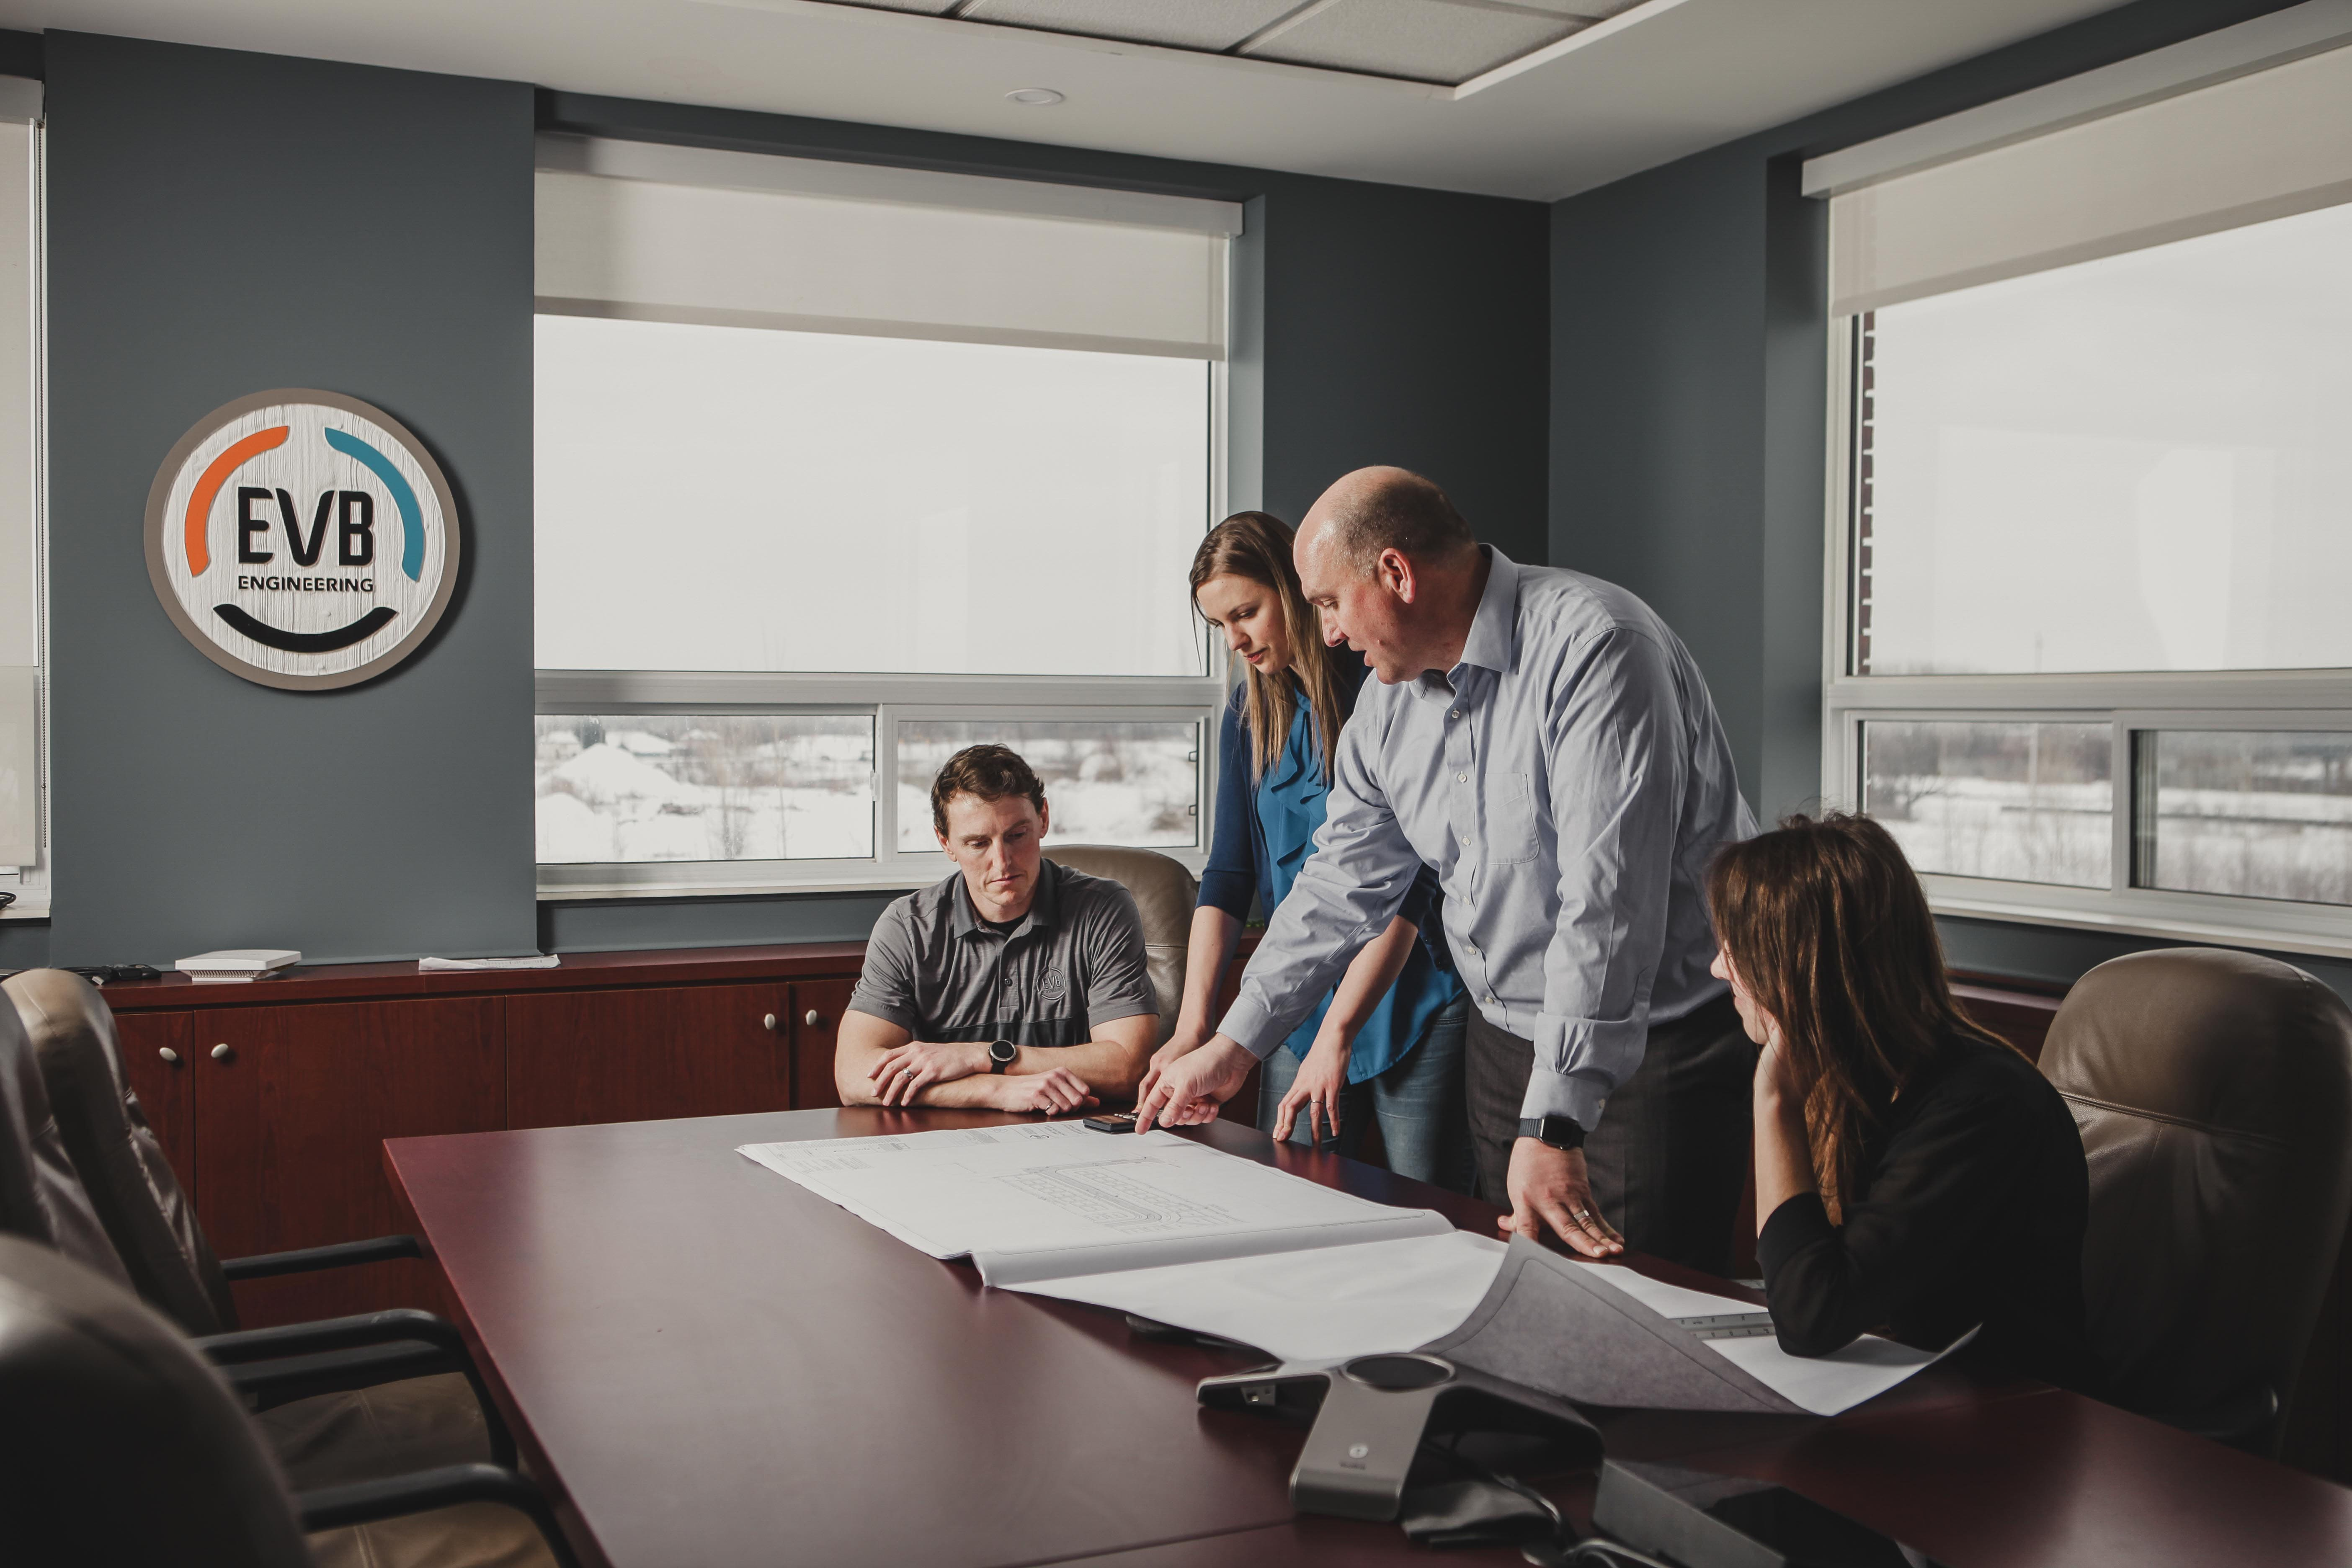 EVB Engineering team discussing a project in a board room